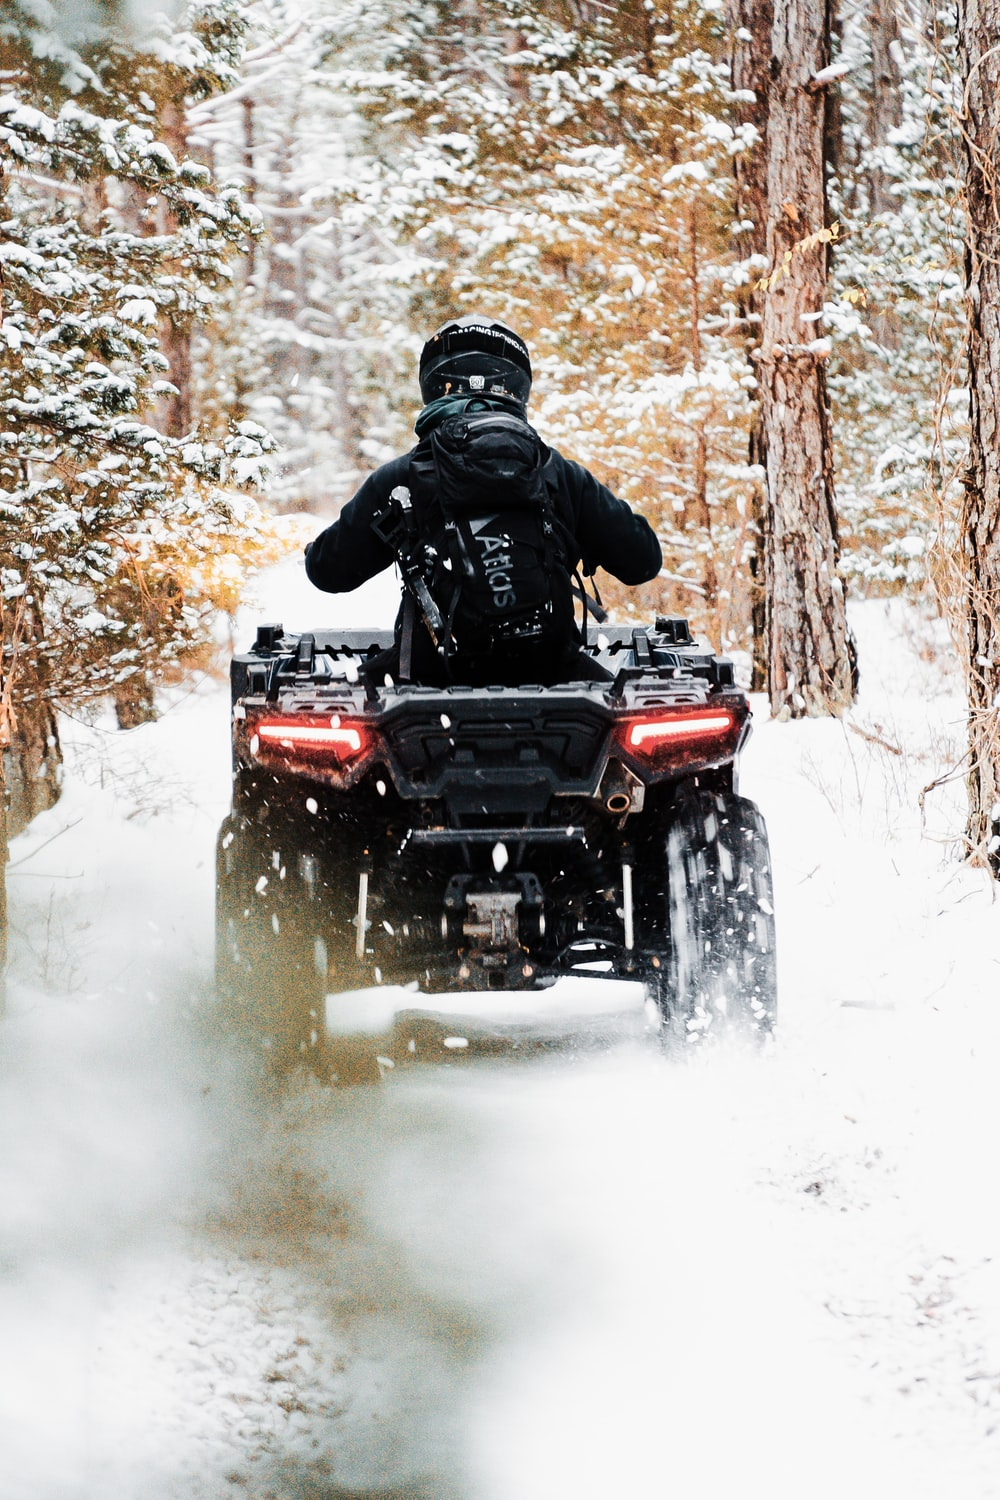 man riding red atv on snow covered ground during daytime